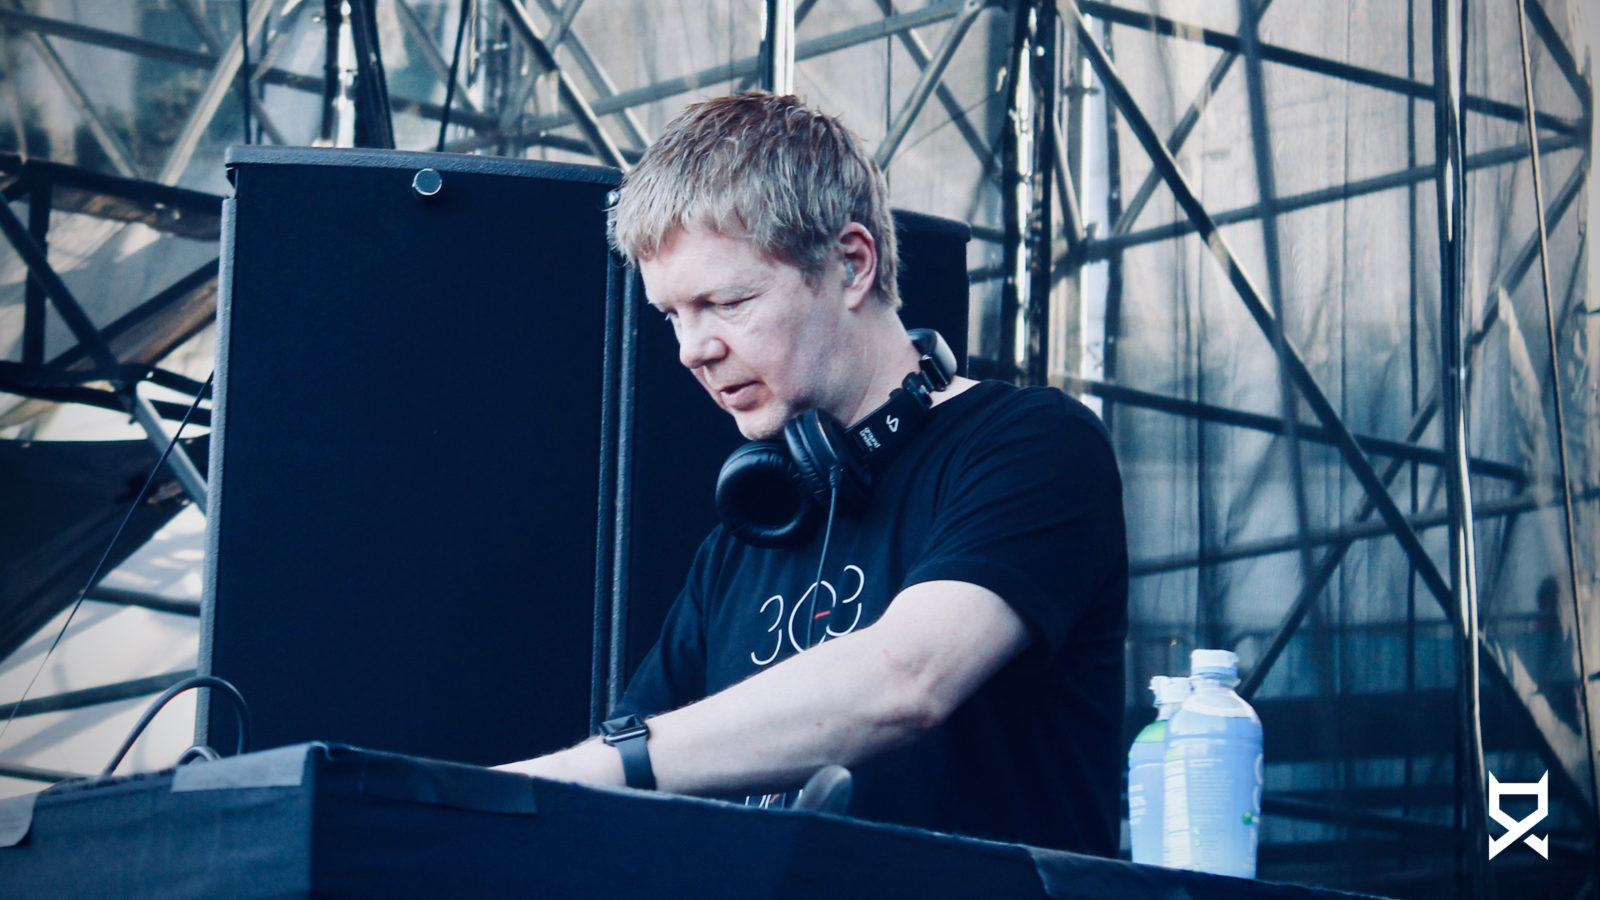 John Digweed - Movement 2018